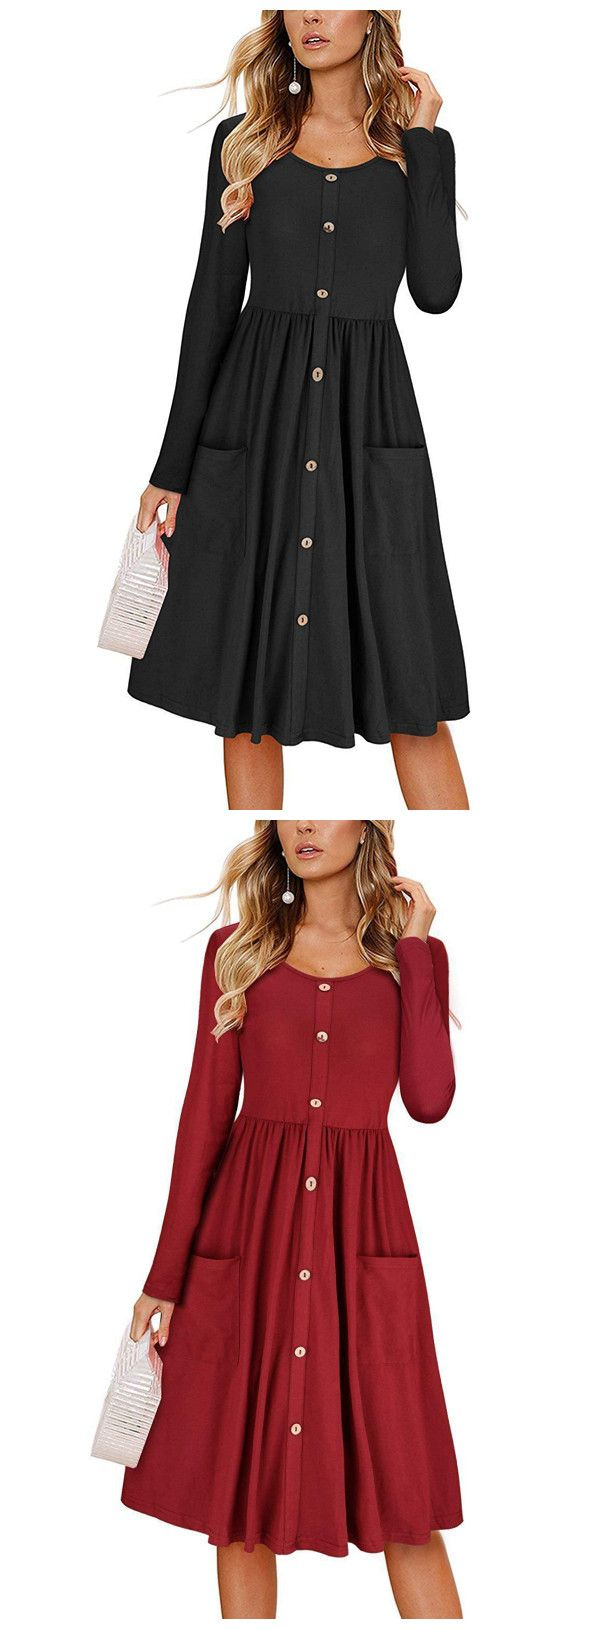 Casual round neck long sleeve high waist button down dress with